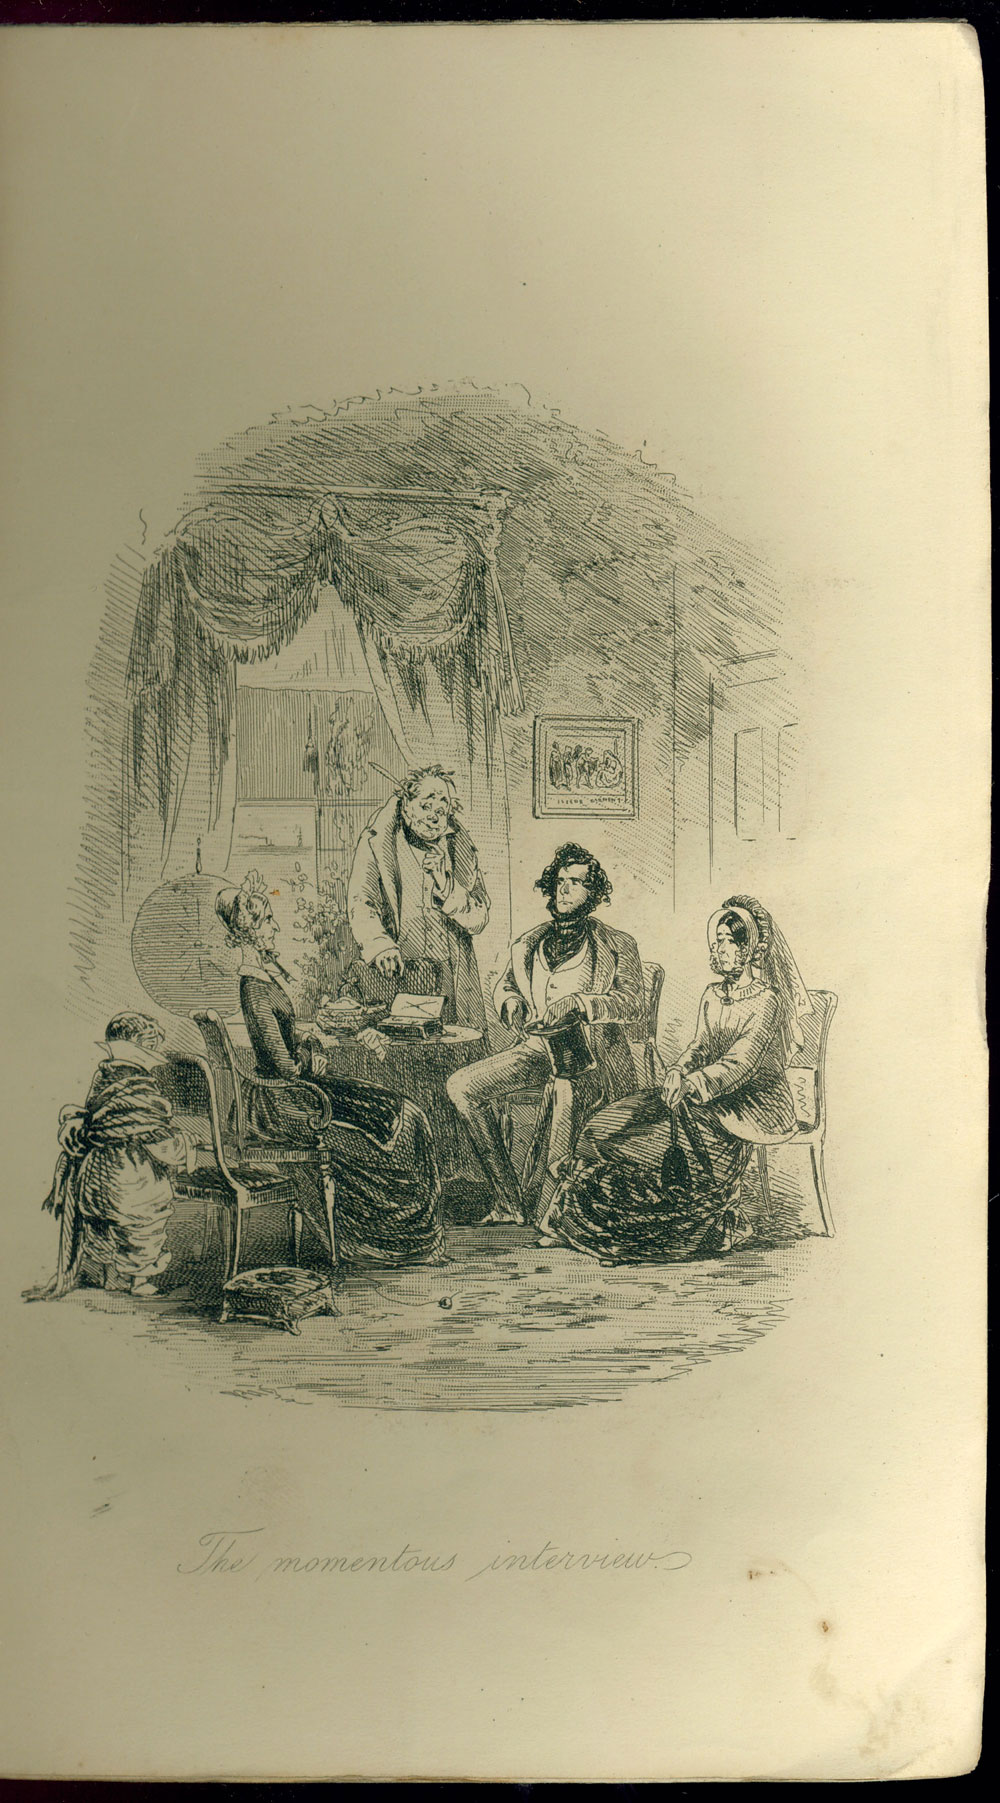 online exhibition charles dickens at college libraries illustration from david copperfield